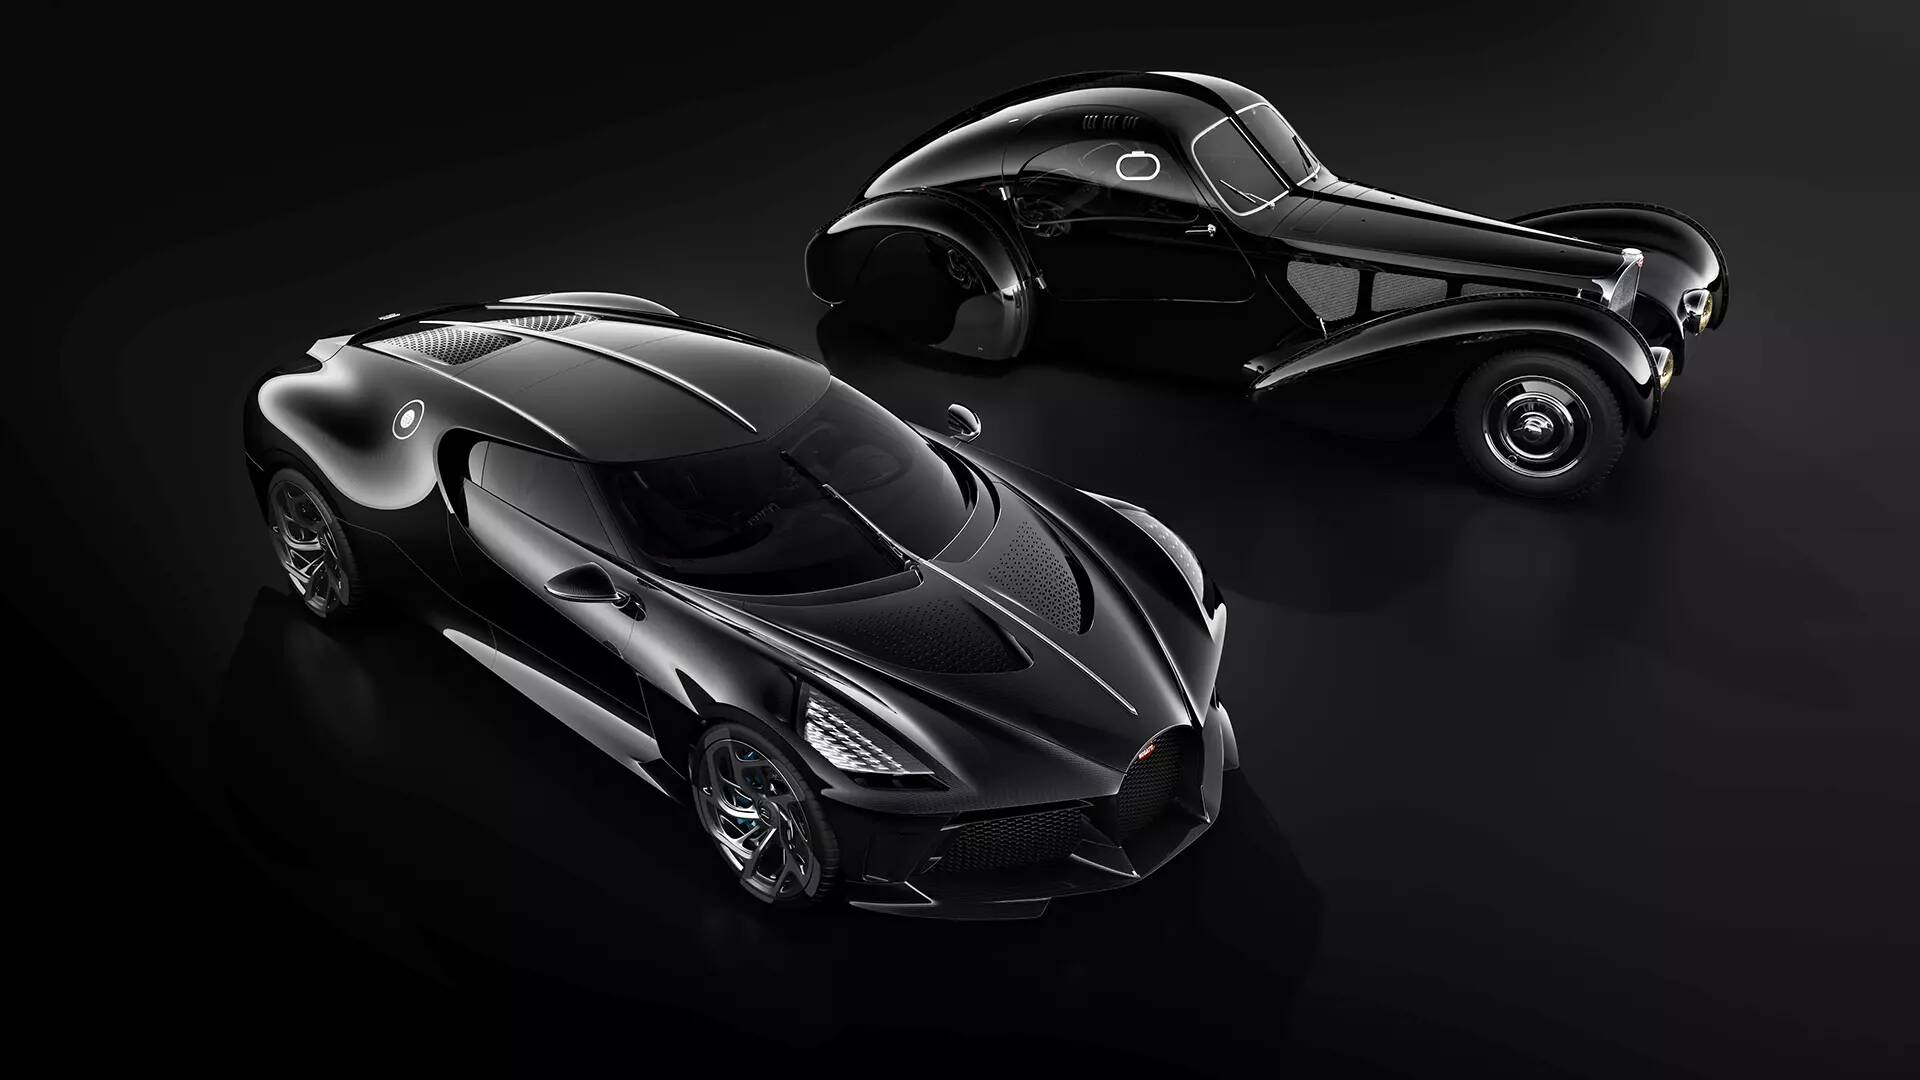 The Bugatti La Voiture Noire Has The Nicest Rear End In: Geneva Motor Show 2019: Got $18.9 Million To Spare For A